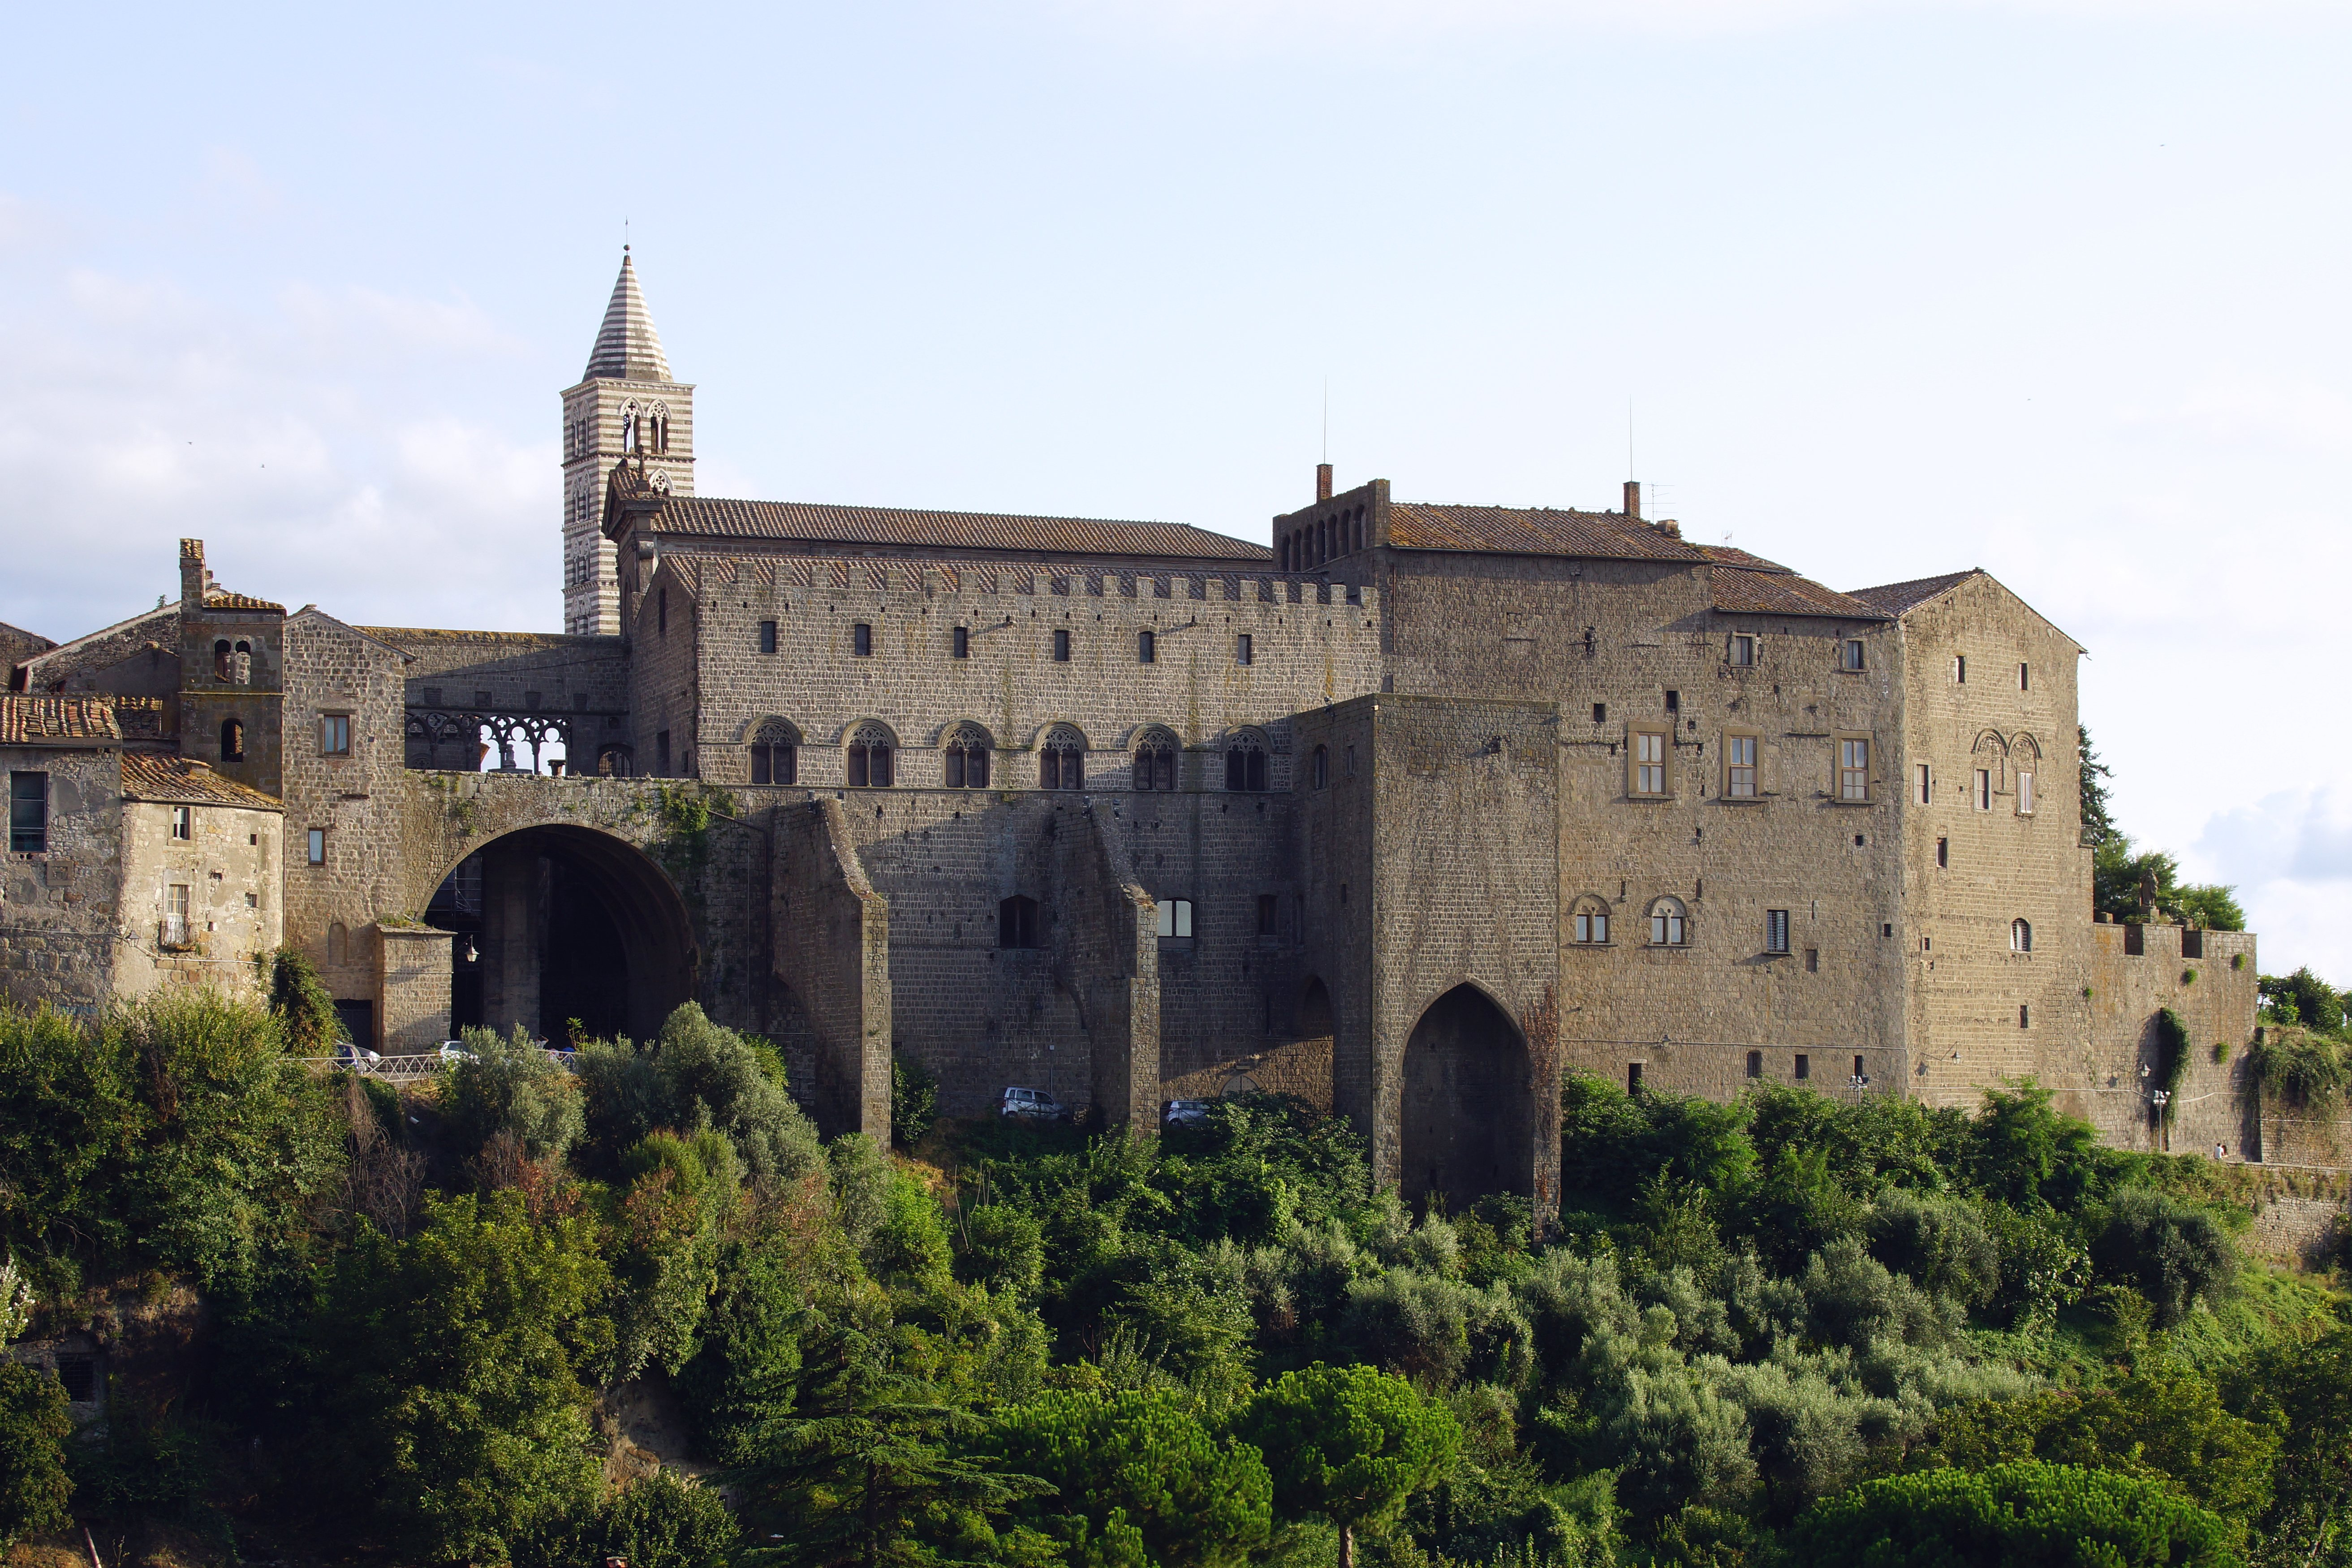 https://upload.wikimedia.org/wikipedia/commons/f/fe/Viterbo_Palast_der_P%C3%A4pste_1255-66_Turm_Cattedrale_di_San_Lorenzo_Duomo_di_Viterbo_Foto_Wolfgang_Pehlemann_DSC00065.jpg